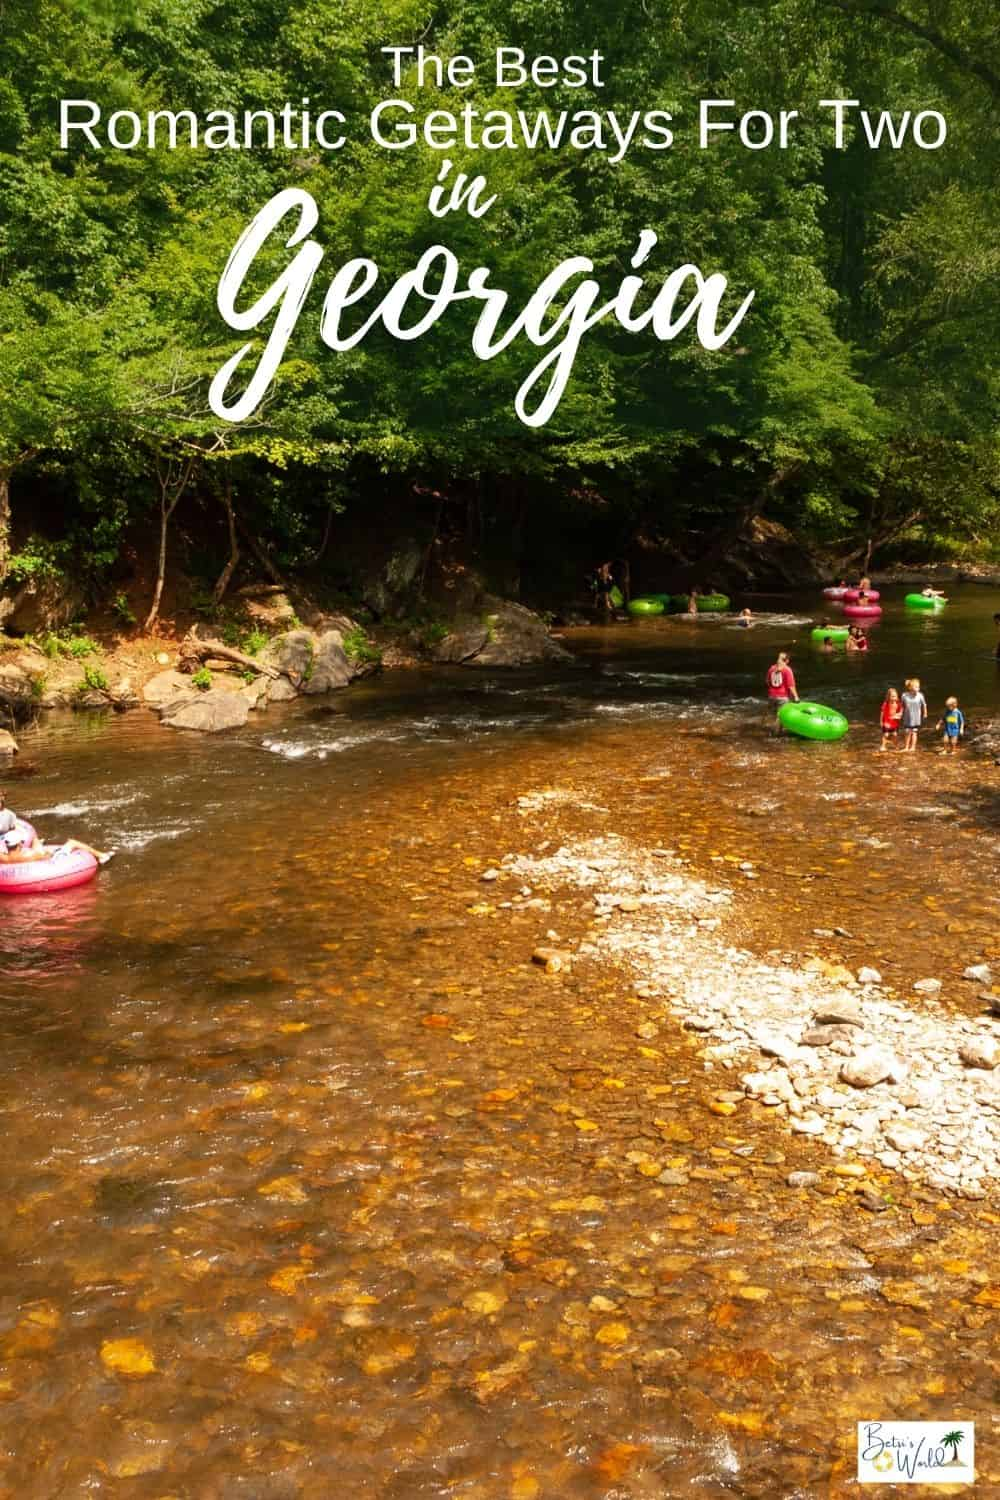 Some of the South's most romantic getaways are just a short drive away in Georgia. Whether you love history, food, hiking, or the beach, Georgia has it all! #Georgia #Georgiagetaways #romanticgetaways #Georgiavacation